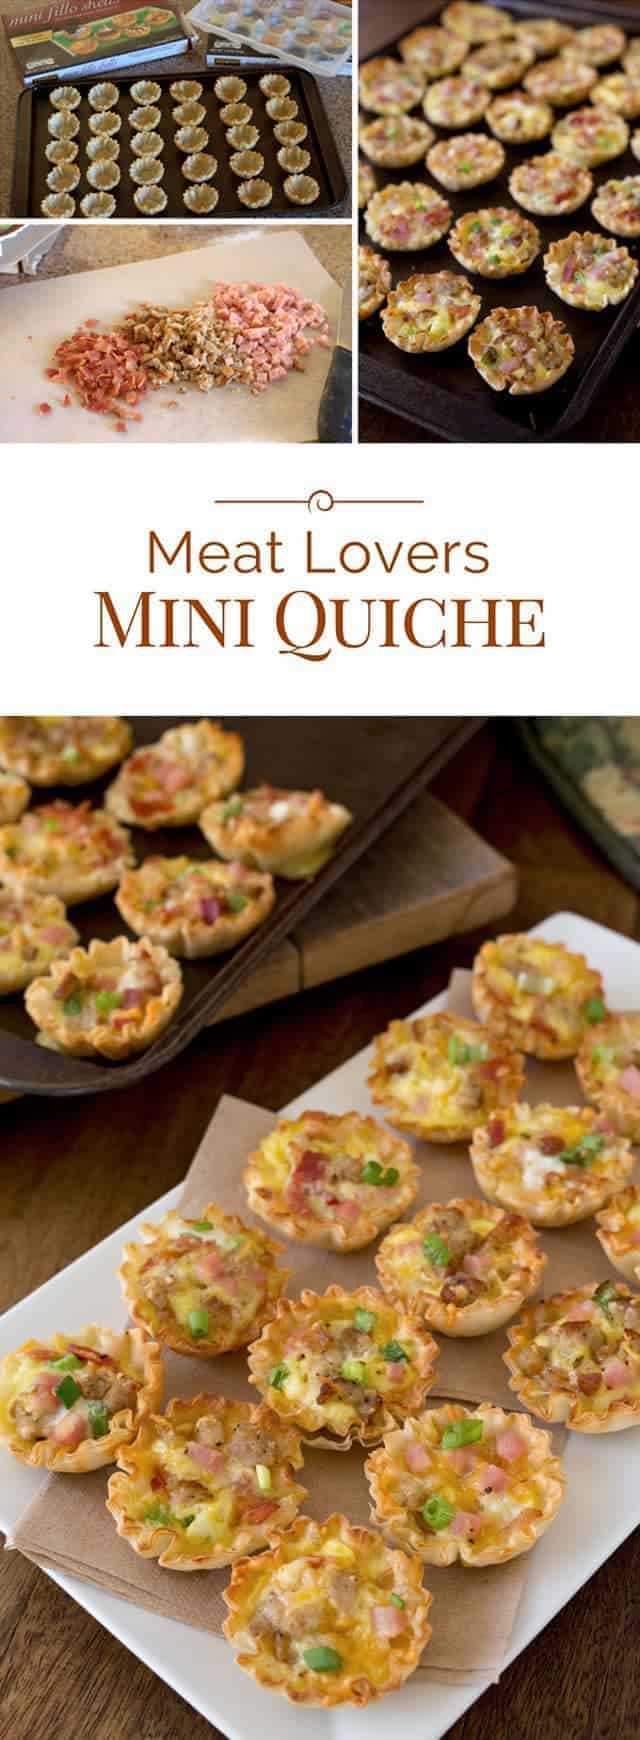 These little Meat Lovers Mini Quiche come together in a flash and would be a great addition to your next brunch.